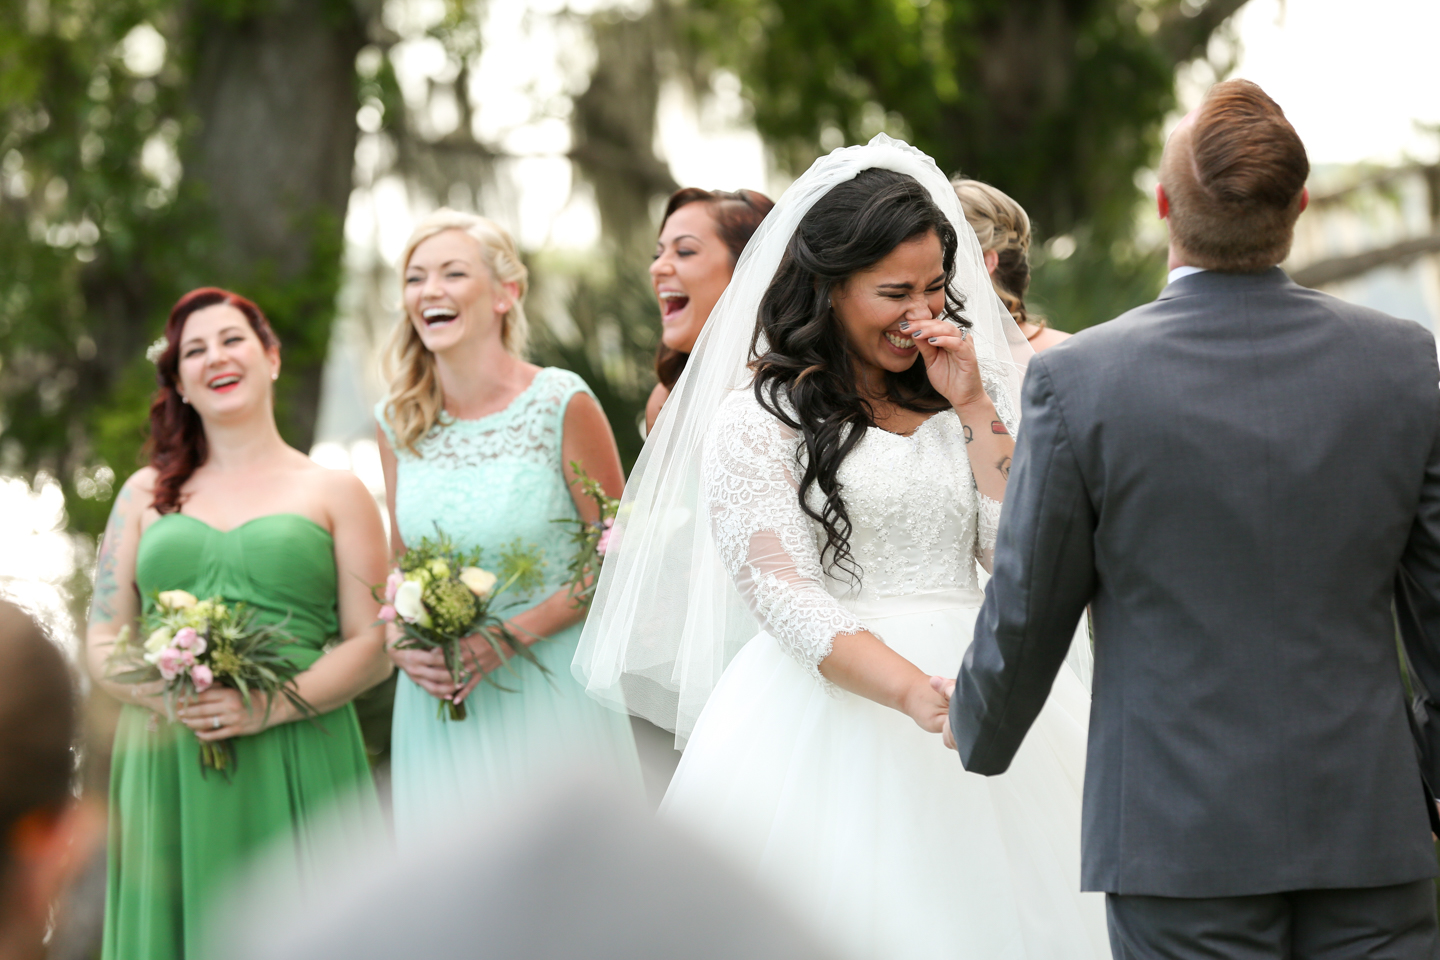 www.livehappystudio.com-wedding-photographer-orlando-fun-candid-portrait-ceremony-bride-reaction-26.jpg